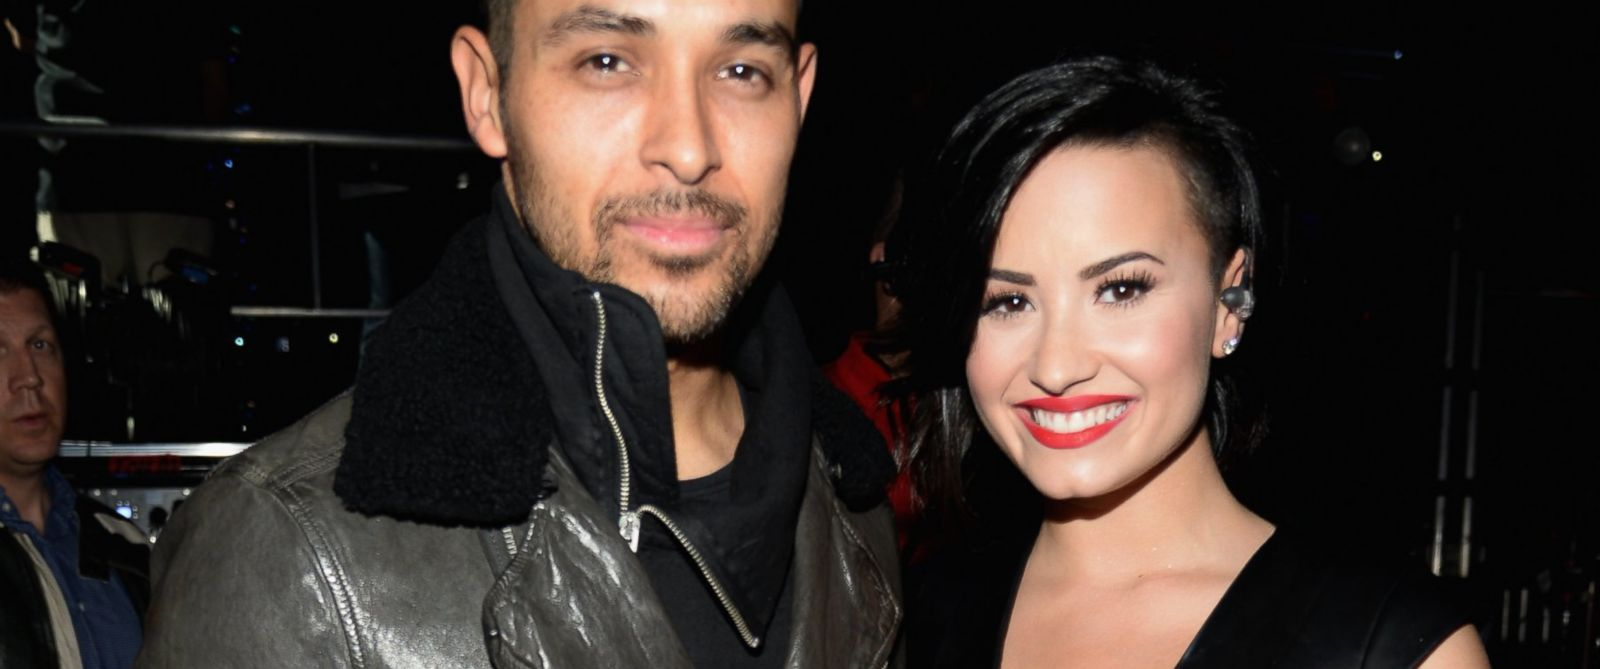 PHOTO: Actor Wilmer Valderrama and singer Demi Lovato attend KIIS FMs Jingle Ball 2014 powered by LINE at Staples Center, Dec. 5, 2014 in Los Angeles.